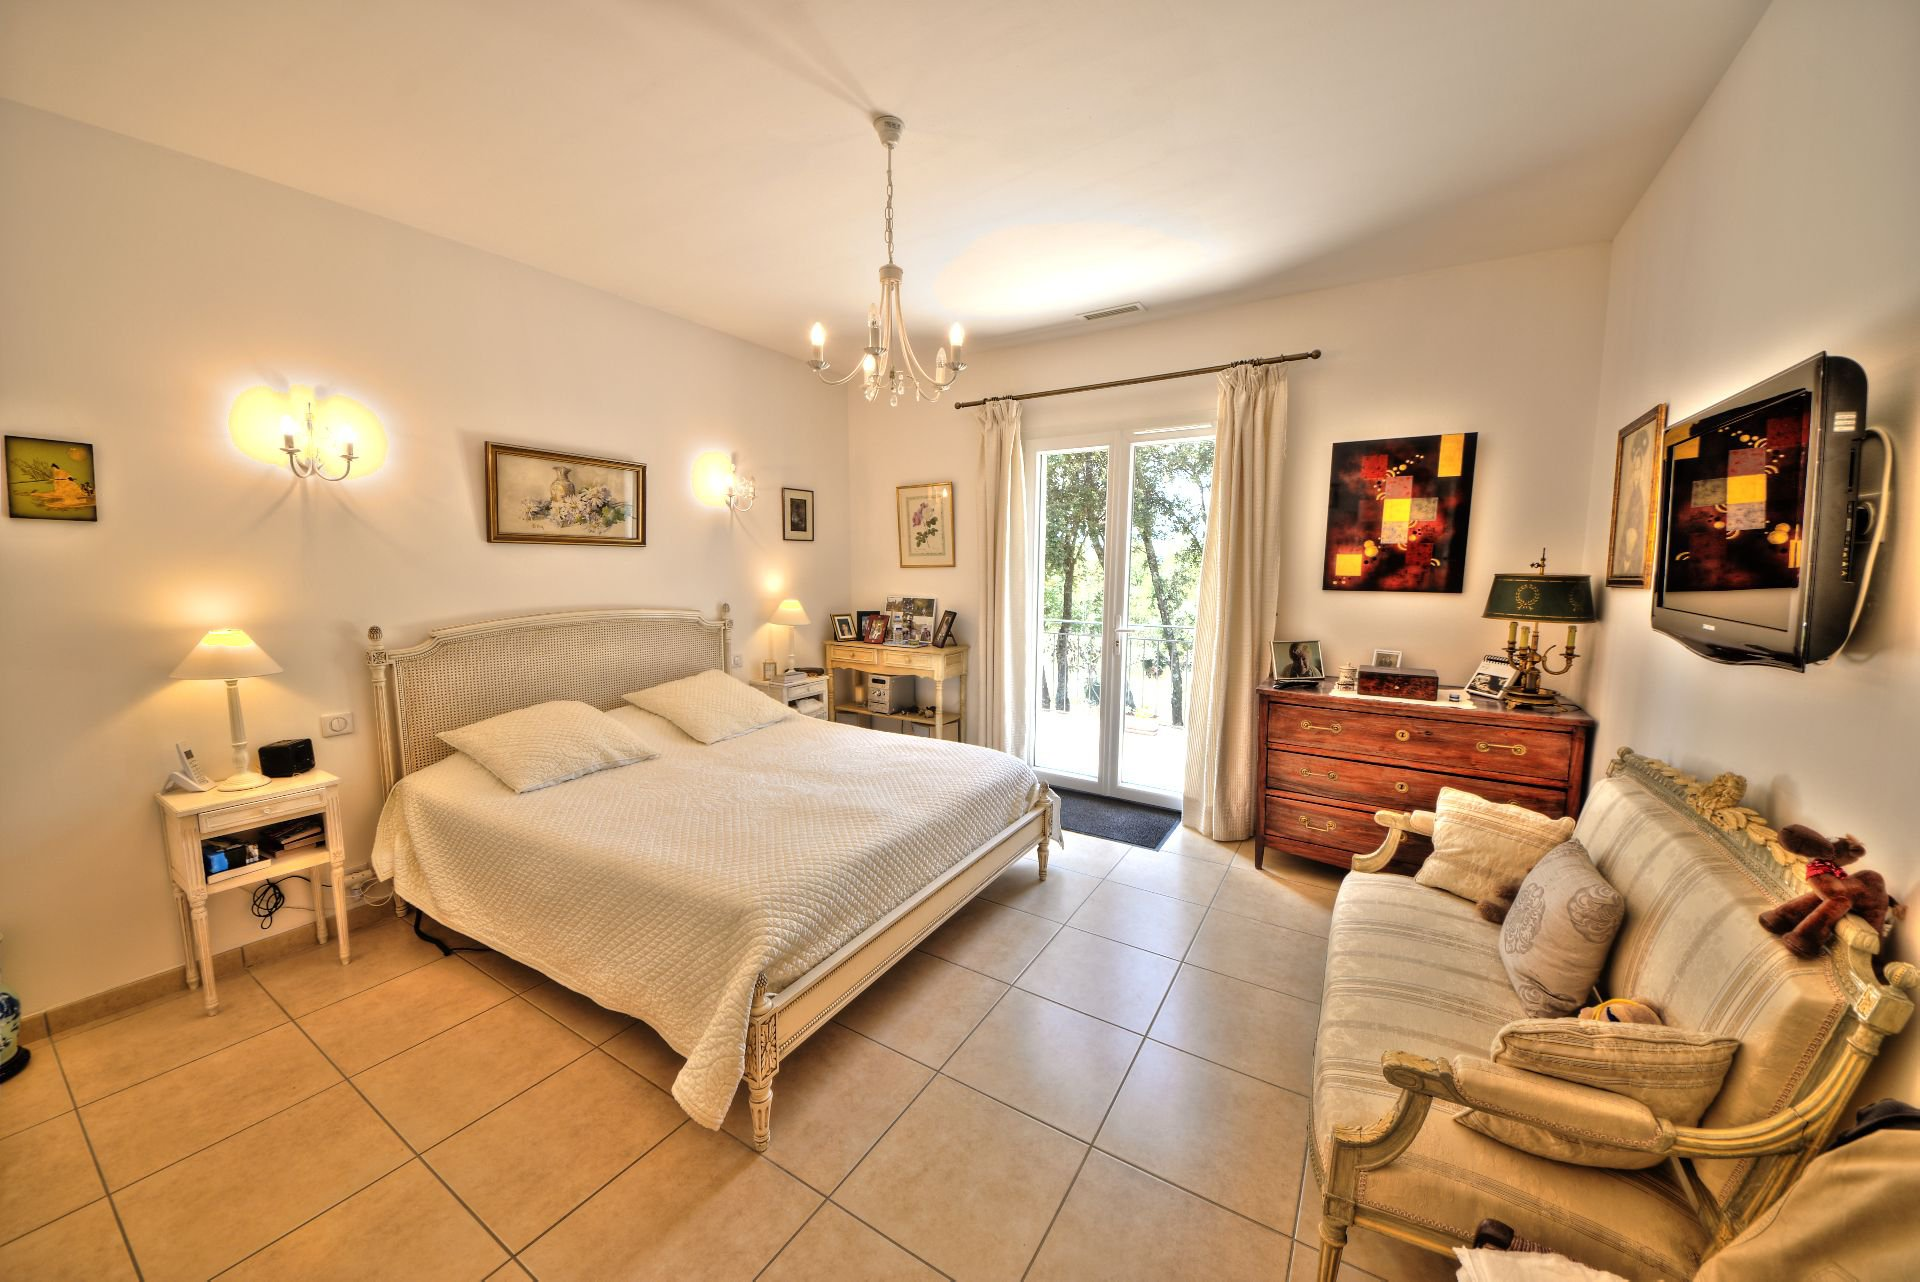 Bedroom in suite - quality and bright house with beautiful volumes in Moissac Bellevue Var Provence